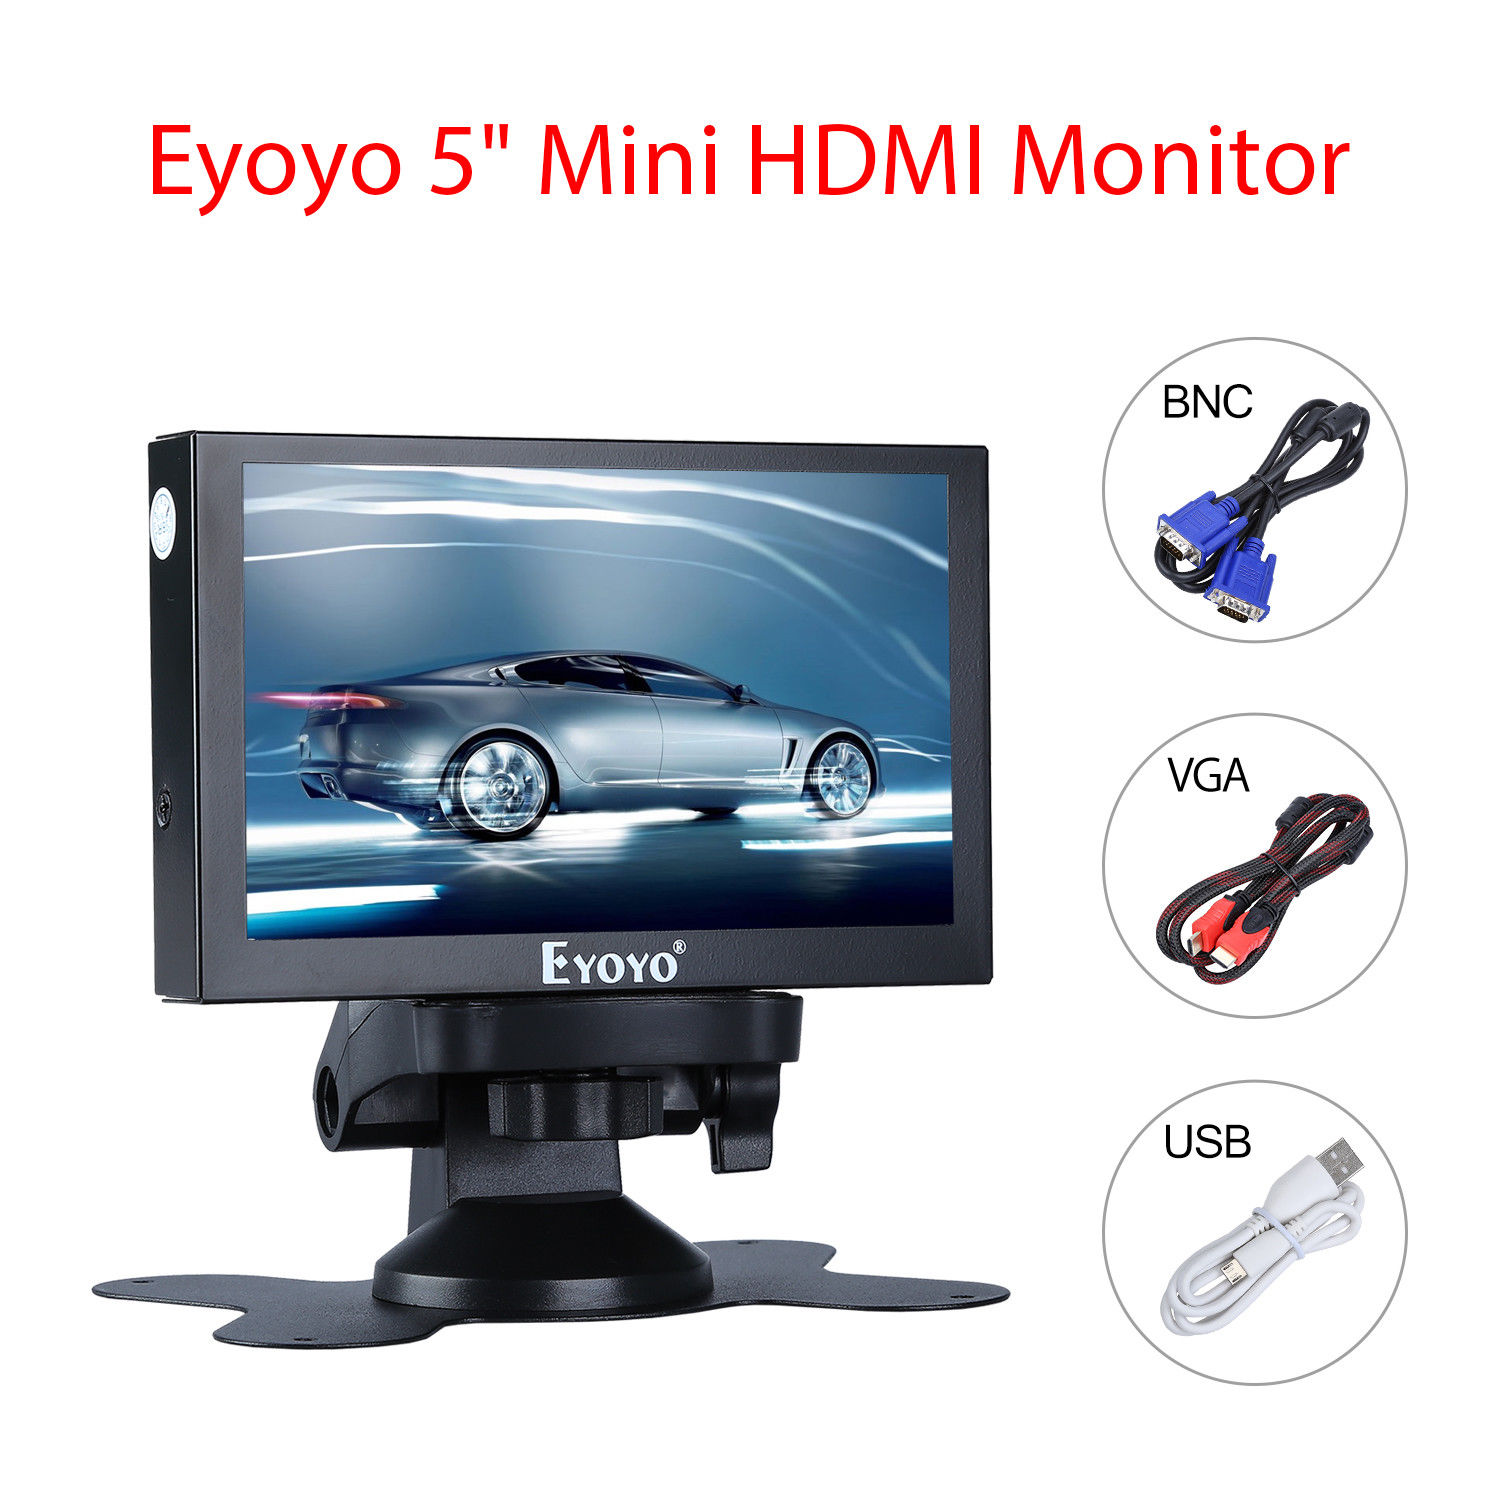 Eyoyo 5 inch Mini HDMI Monitor 800x480 Car Rear View TFT LCD Color Screen Display With BNC/VGA/AV/HDMI Output Built-in Speaker